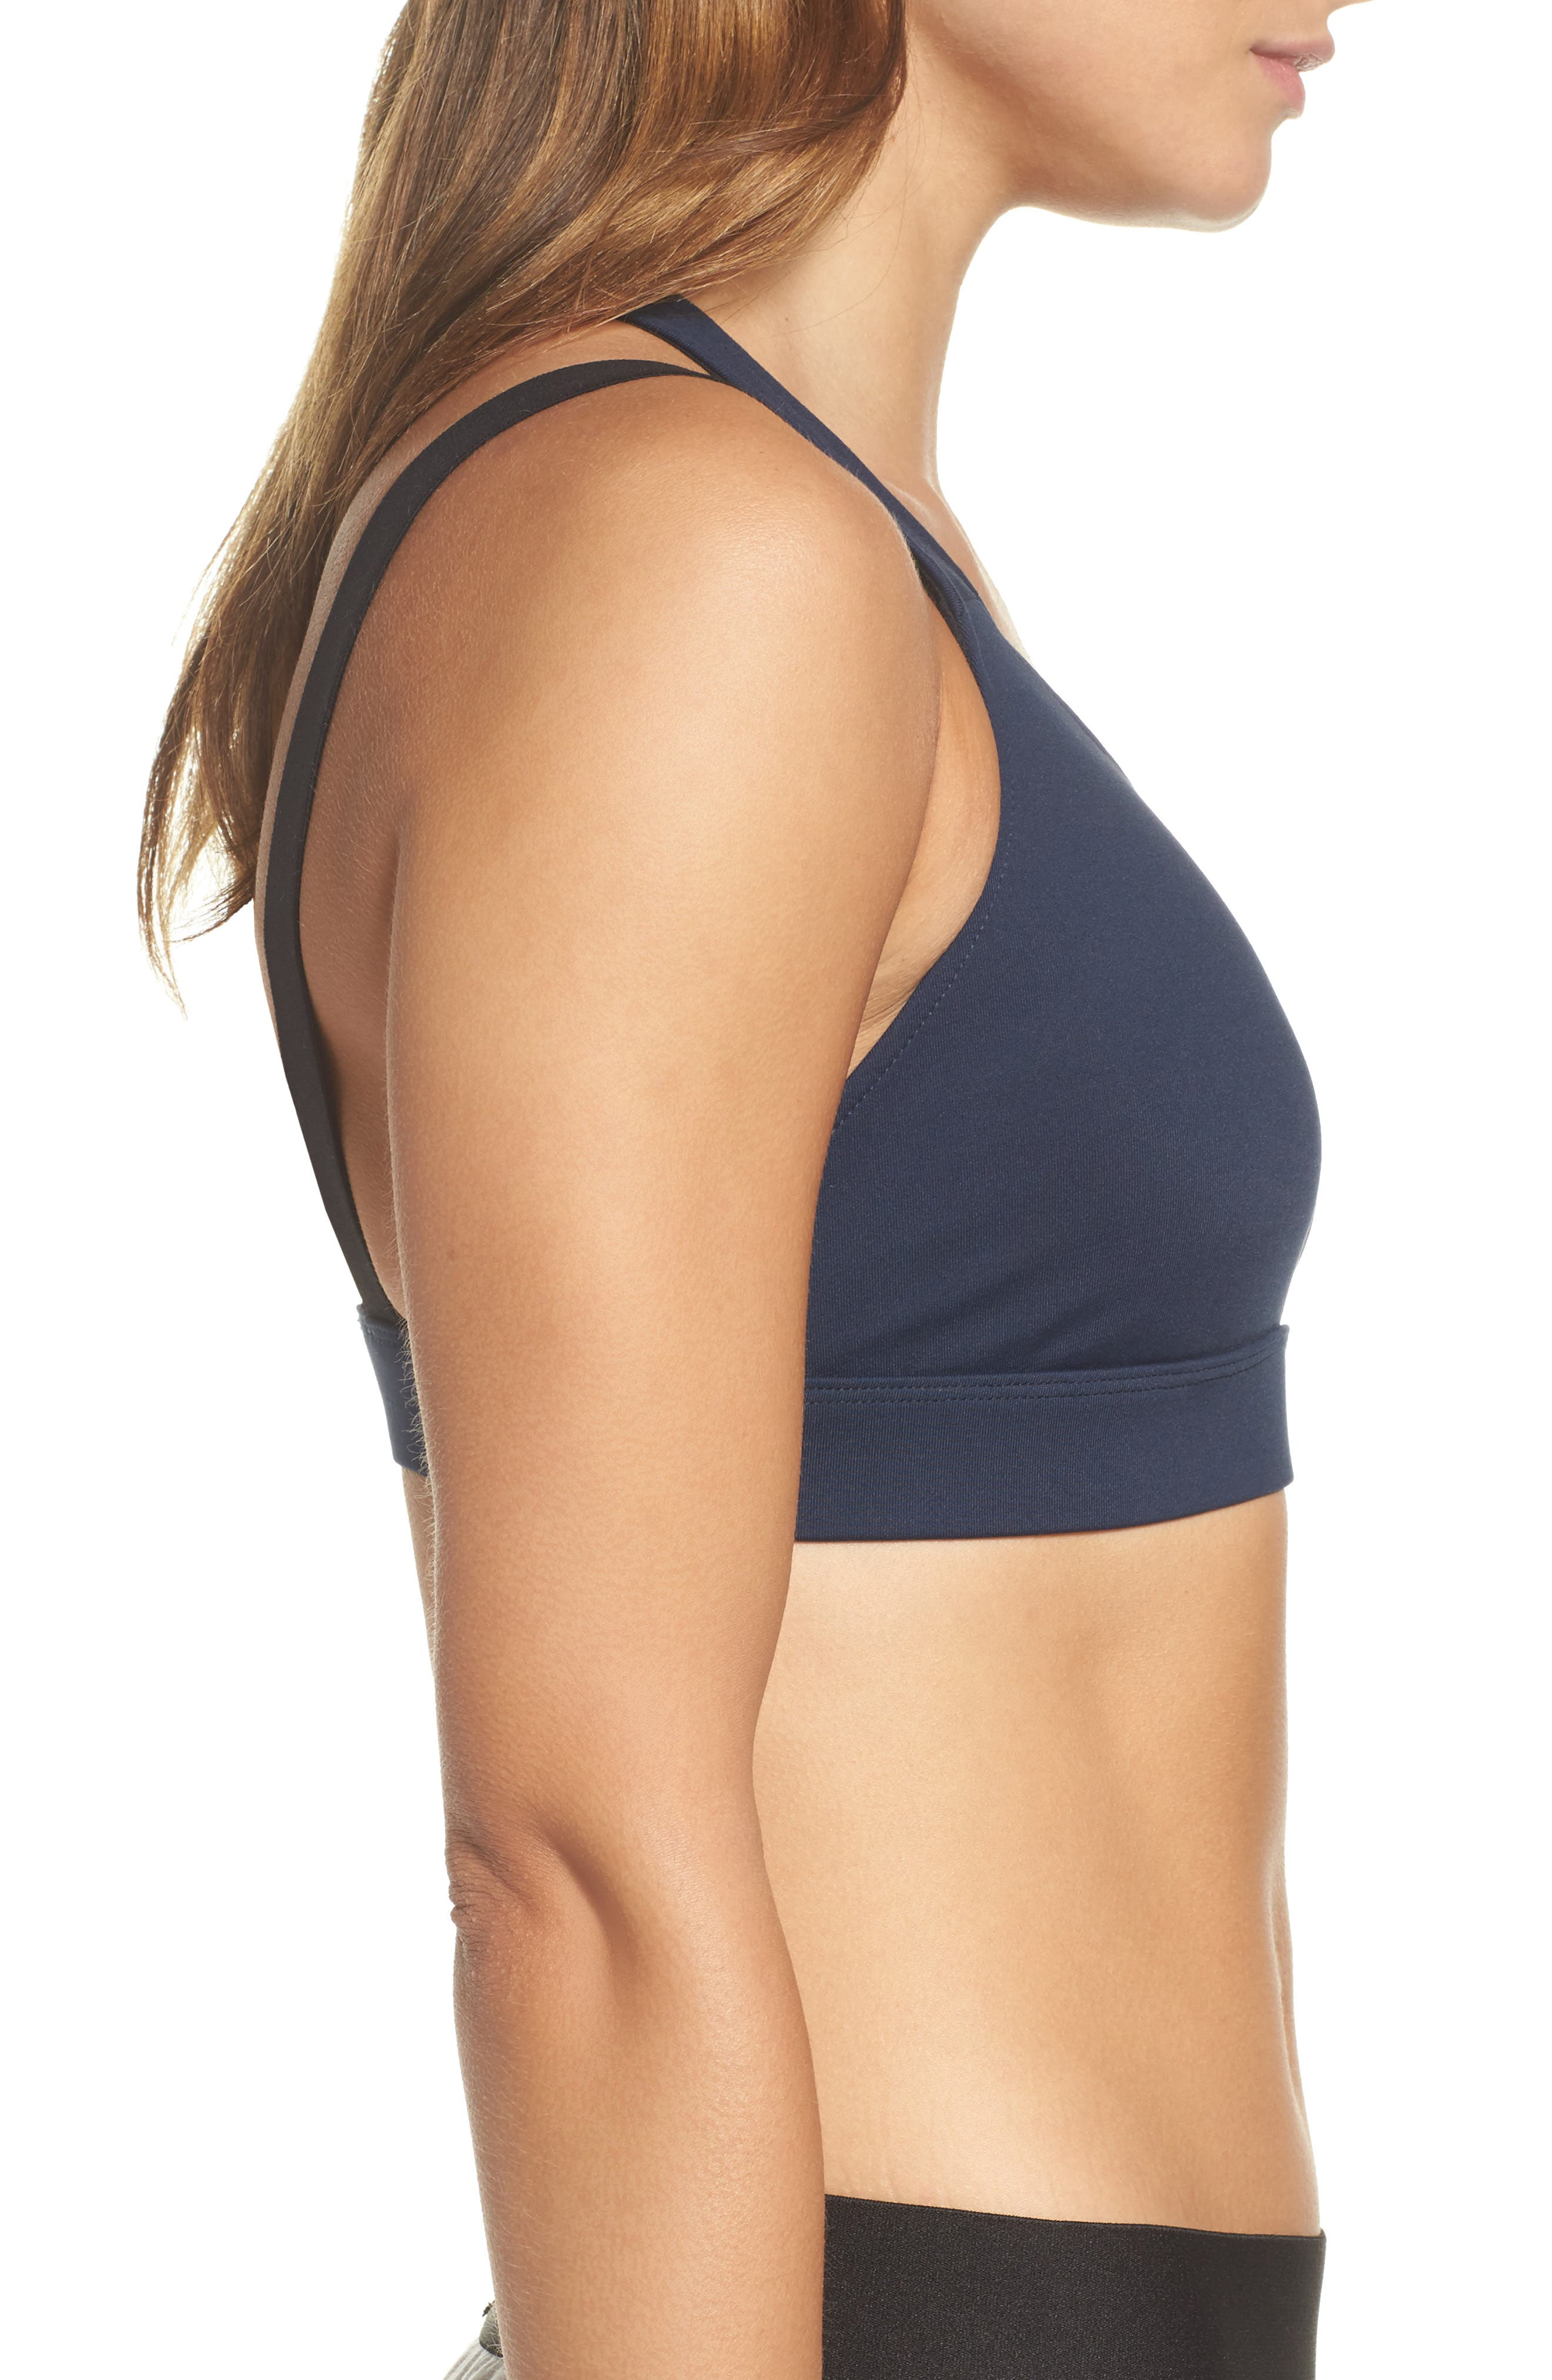 Forte Sports Bra,                             Alternate thumbnail 3, color,                             Midnight Blue/ Black